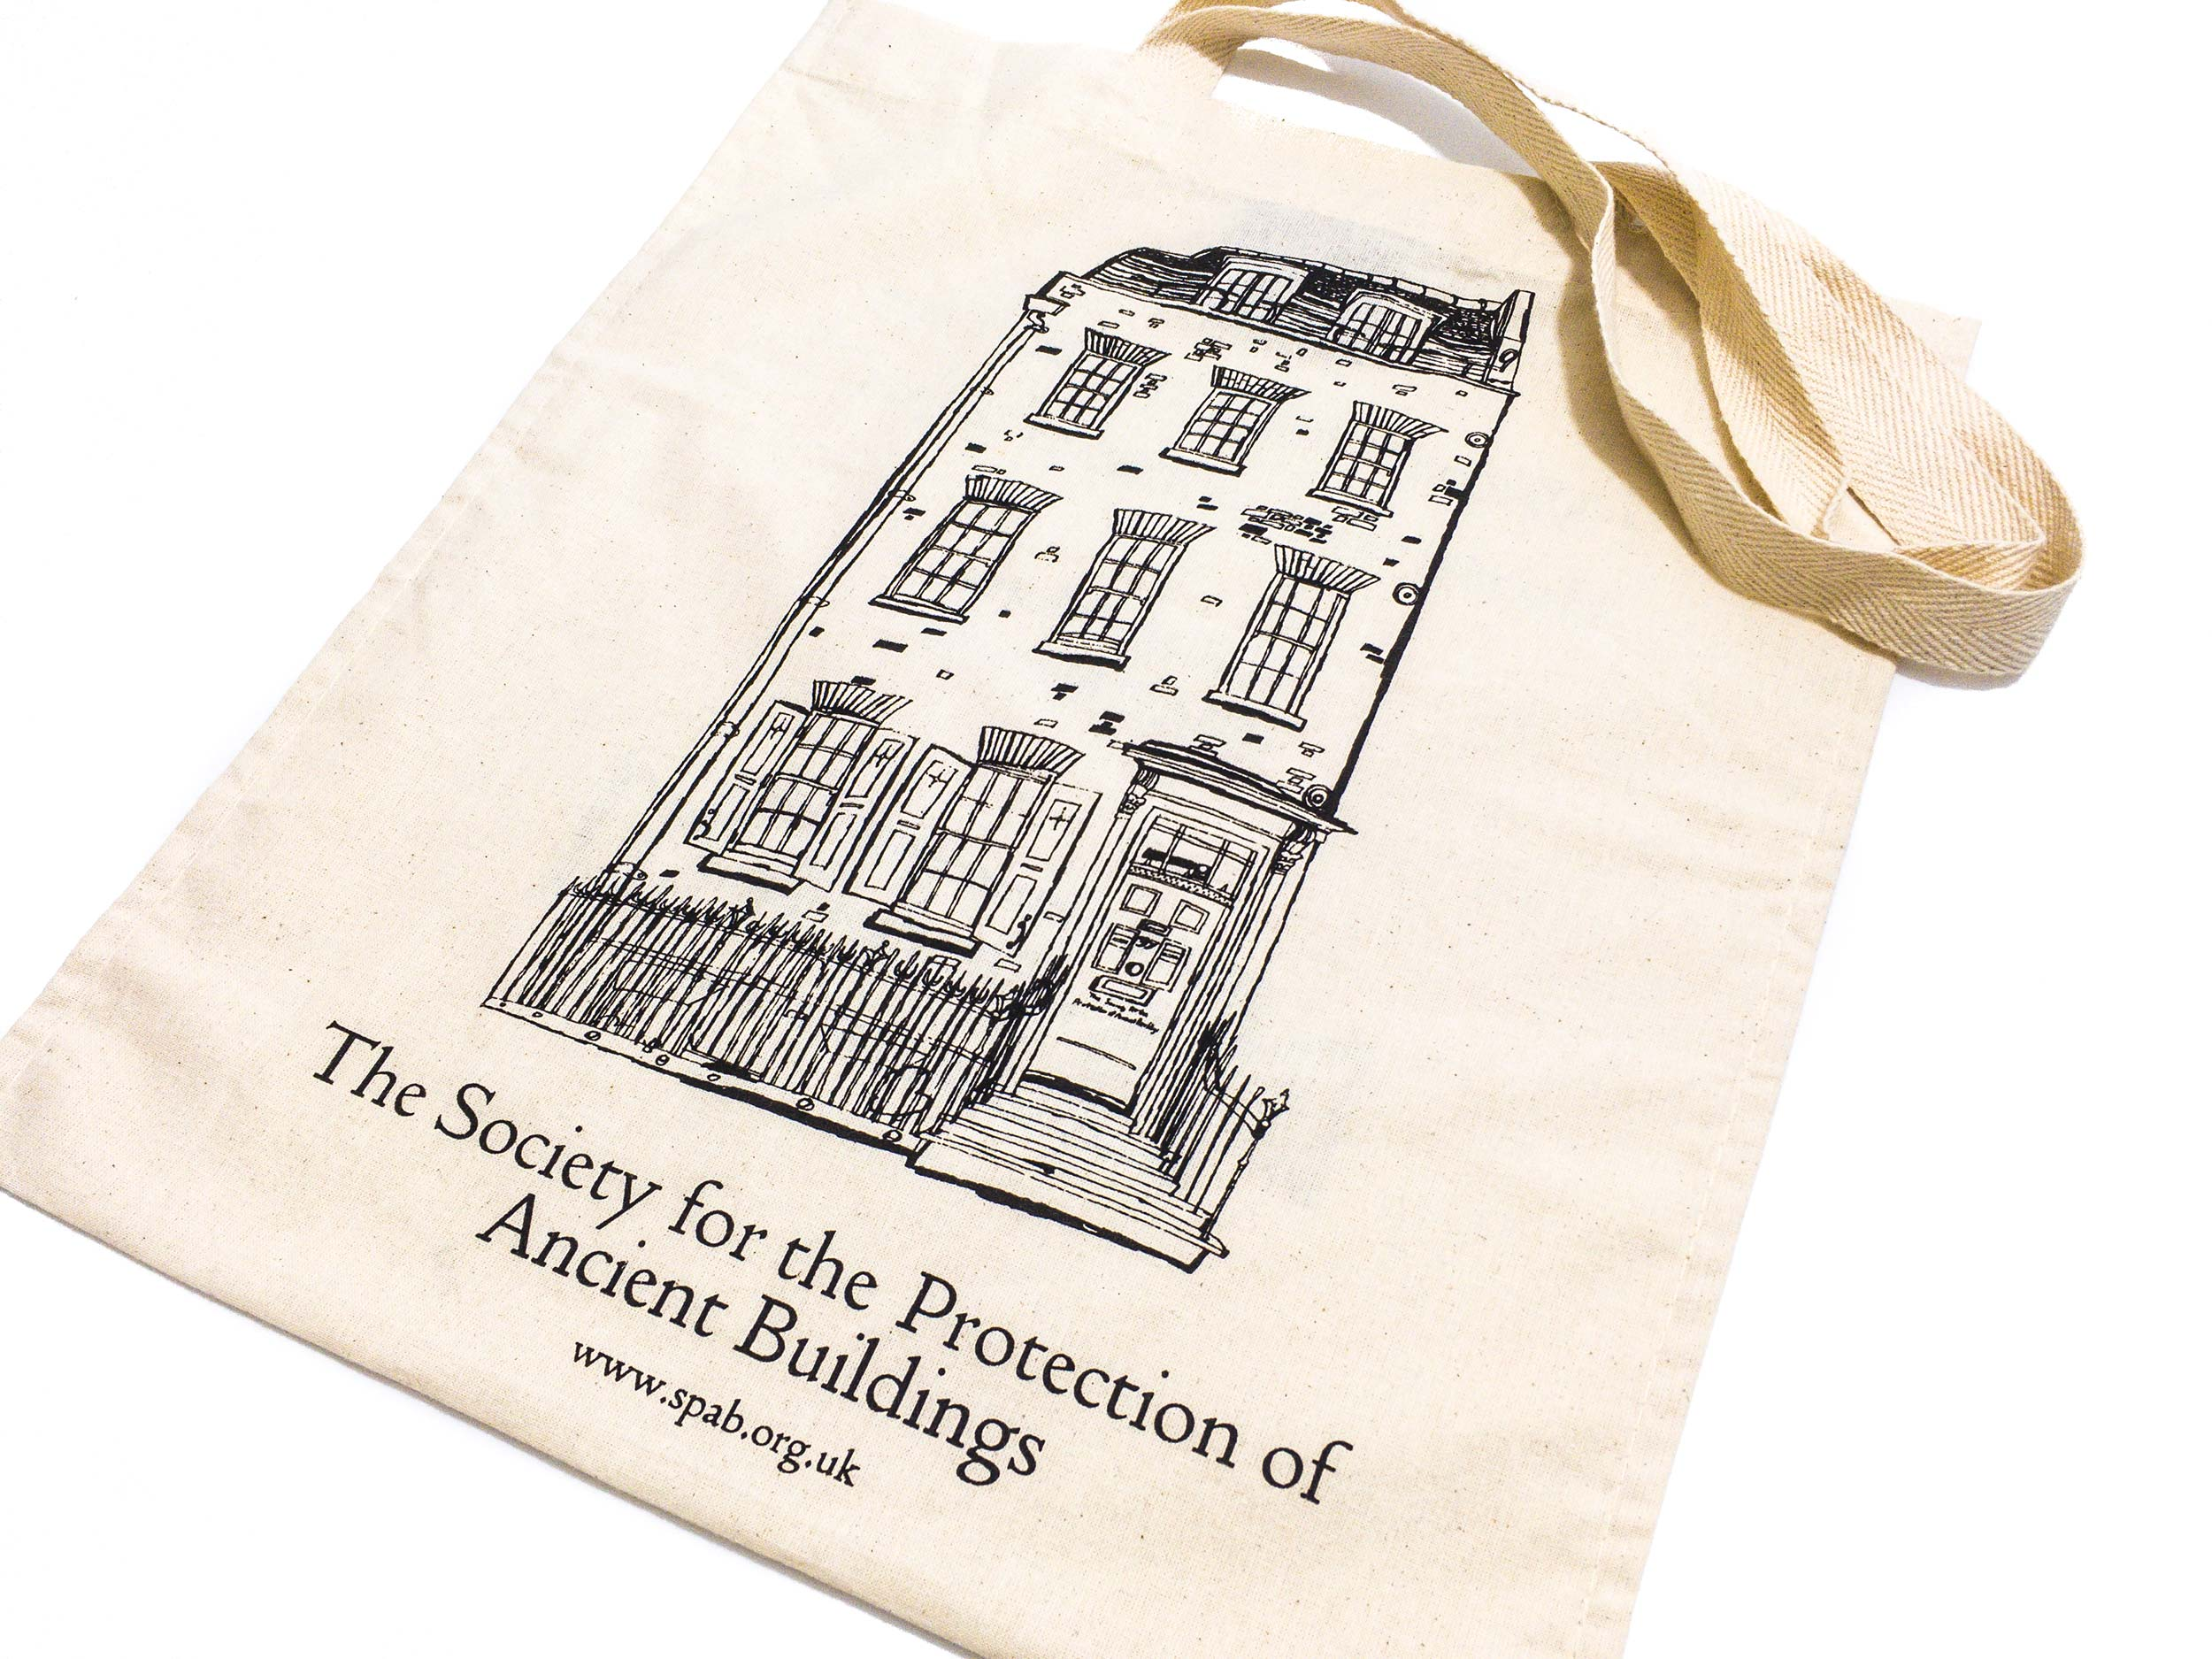 Canvas bag for the SPAB by James Oses